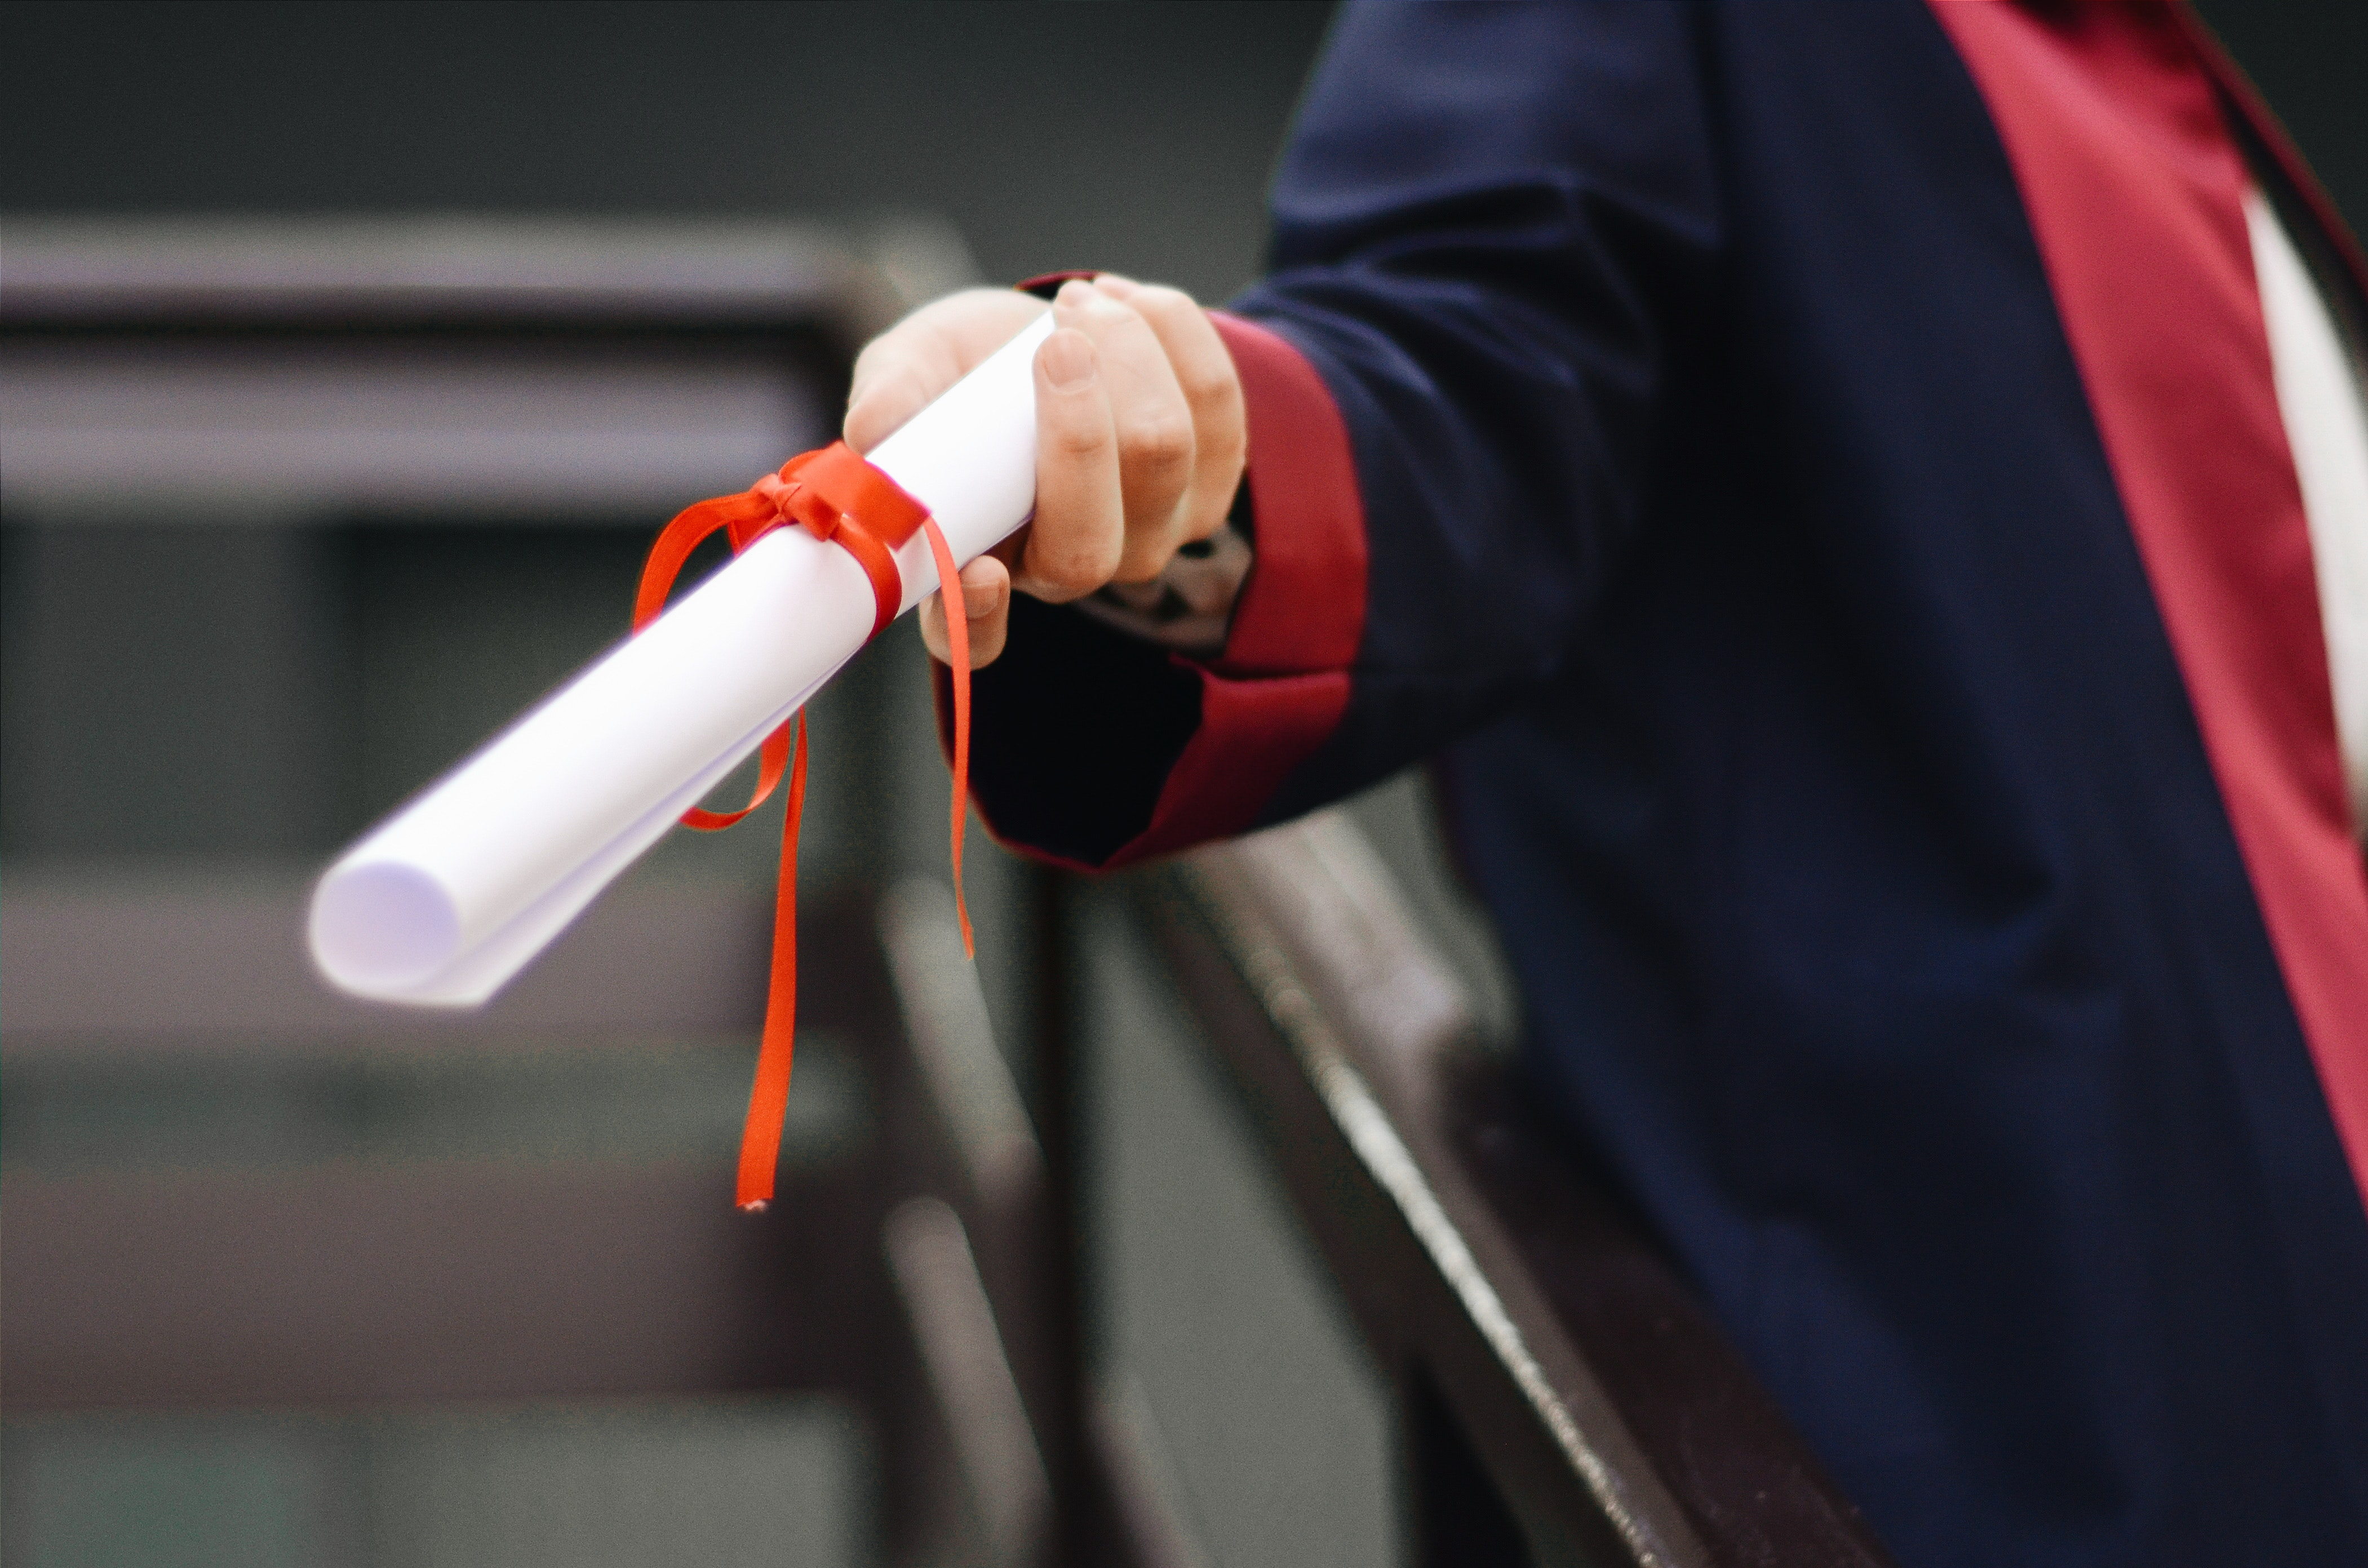 Few would debate that doing a master's degree involves significant sacrifices, difficulties, time, money, and effort. The burning question is, is it worth it?